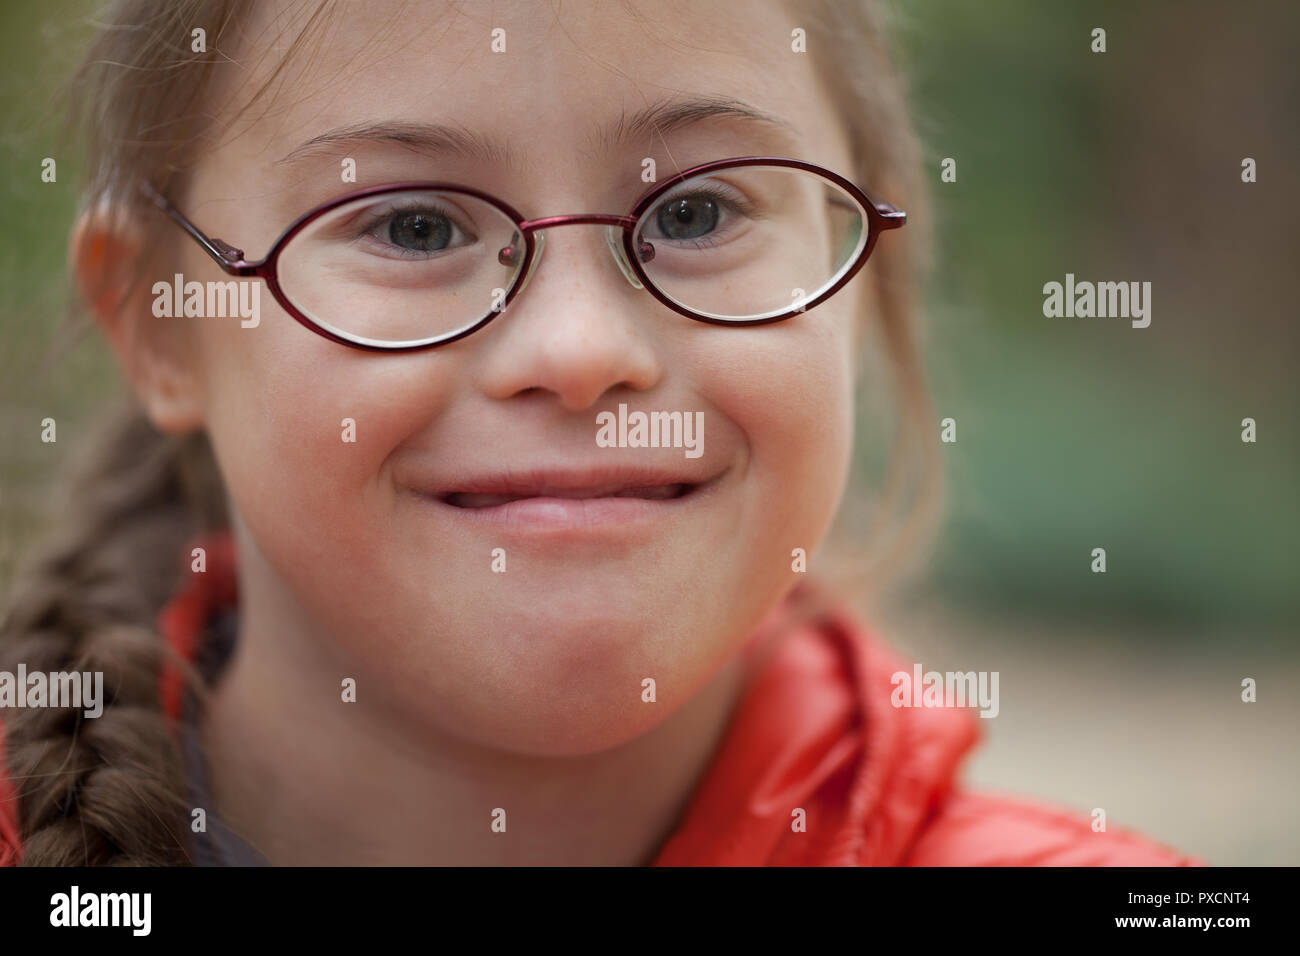 Portrait of a girl with special needs in glasses close-up in nature - Stock Image